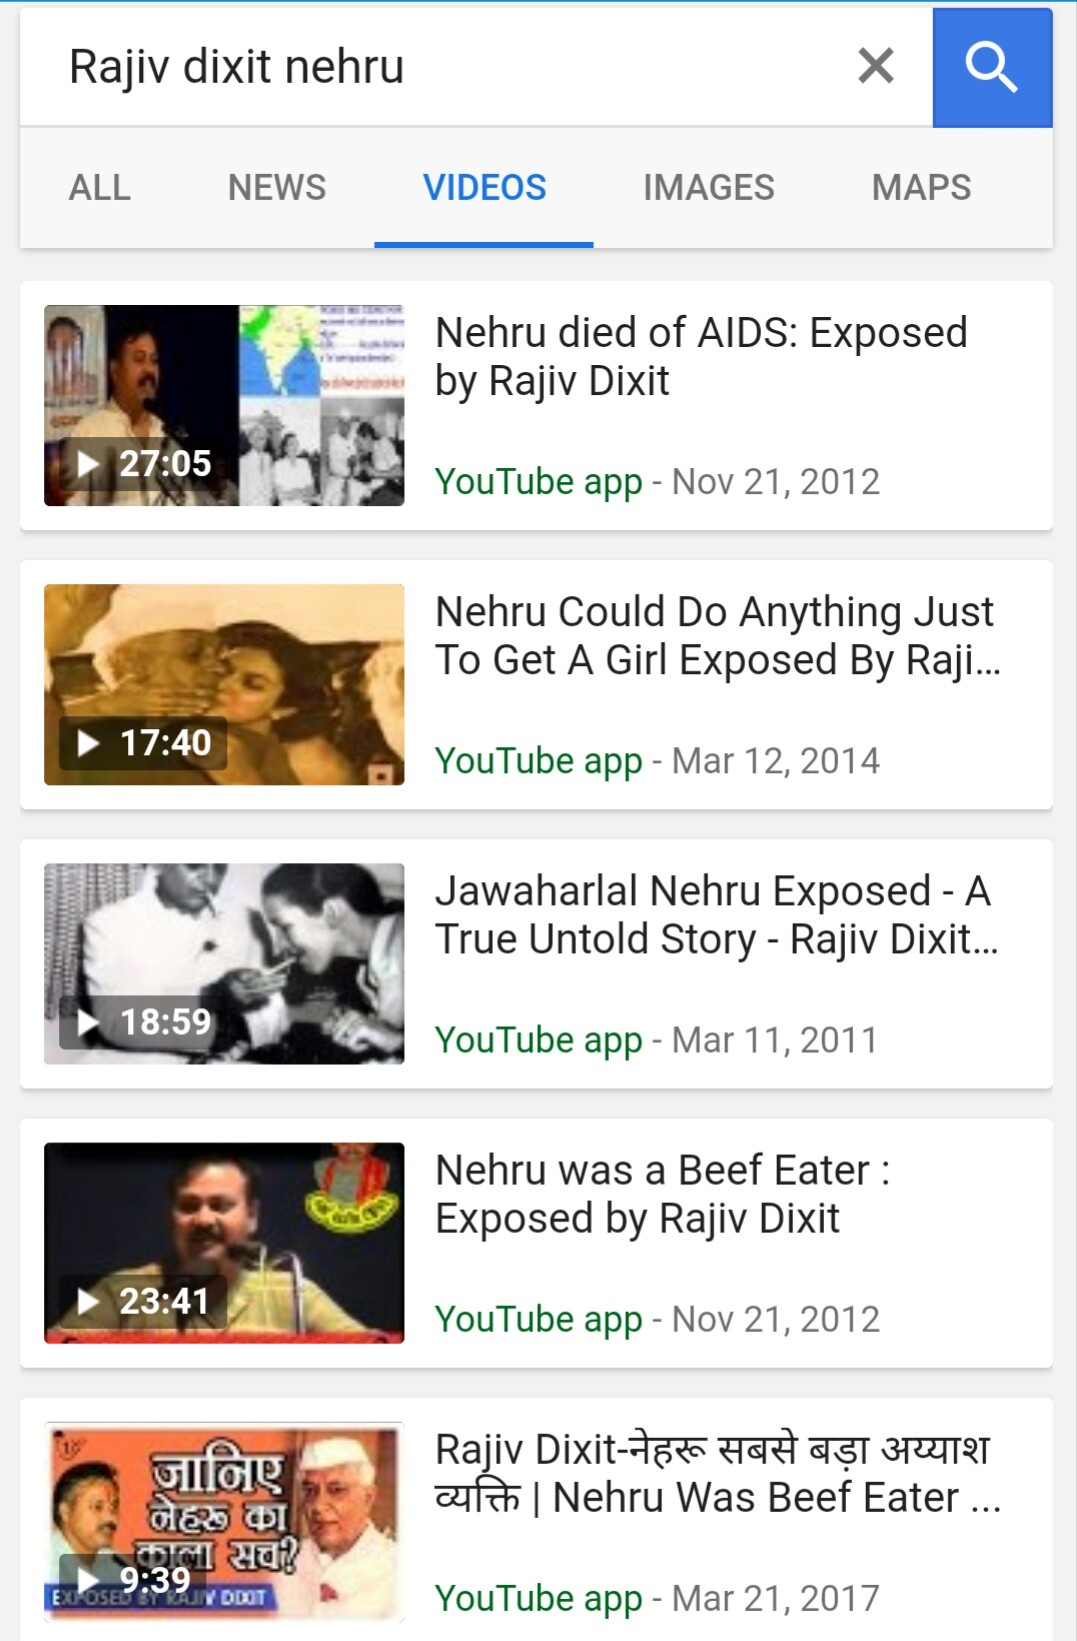 What are your opinions about the videos by Mr  Rajeev Dixit